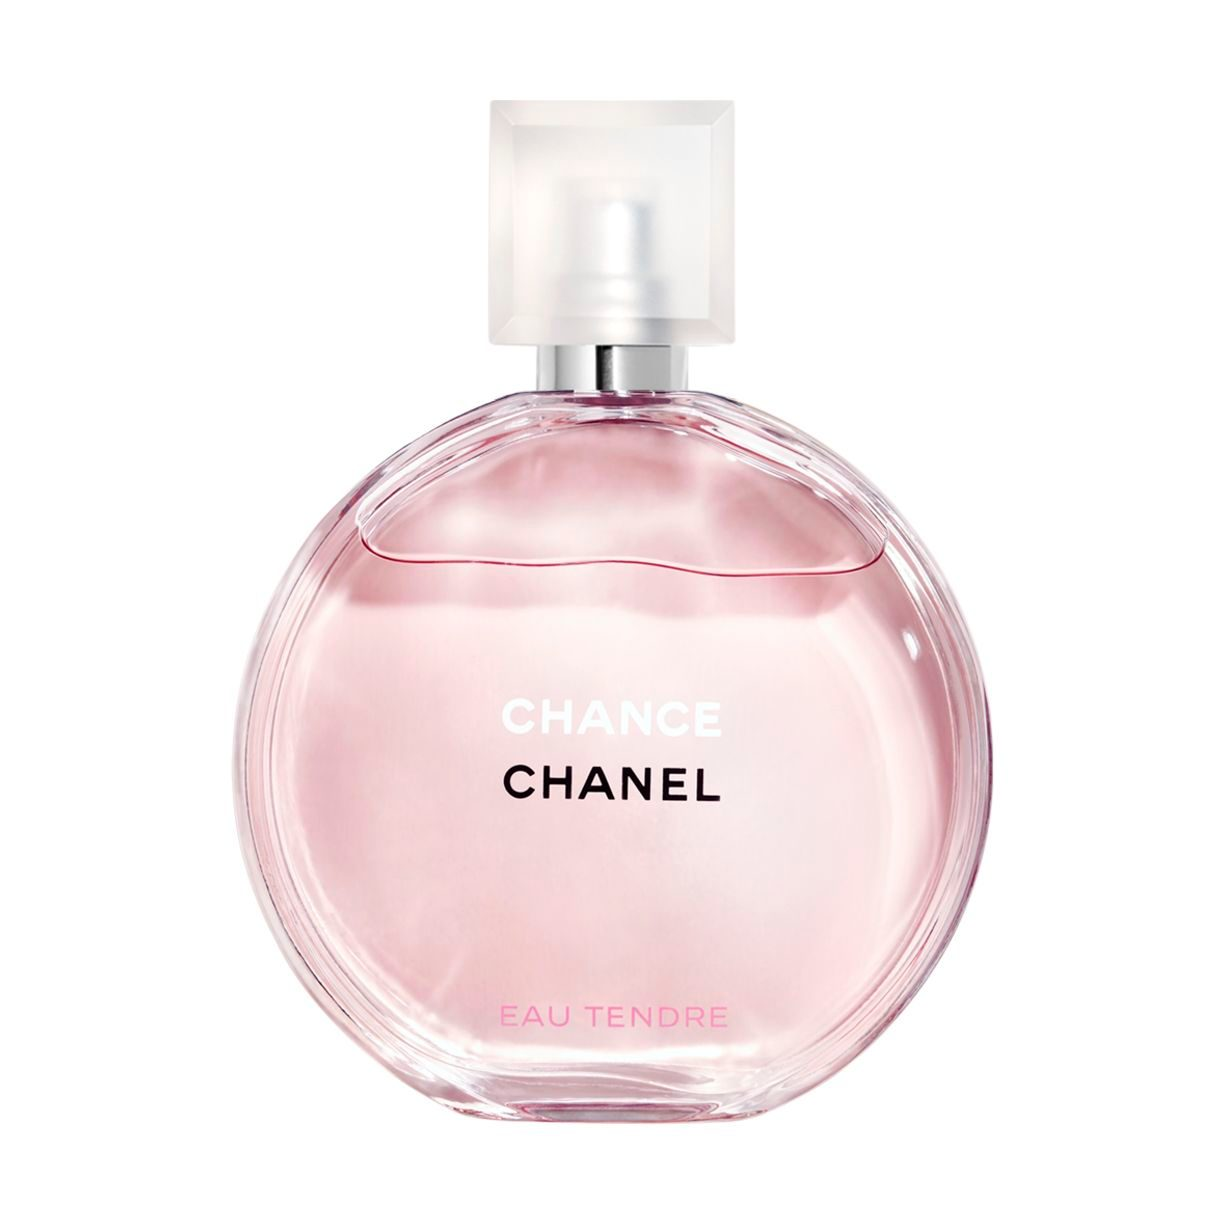 chance eau tendre eau de toilette twist and spray fragrance chanel